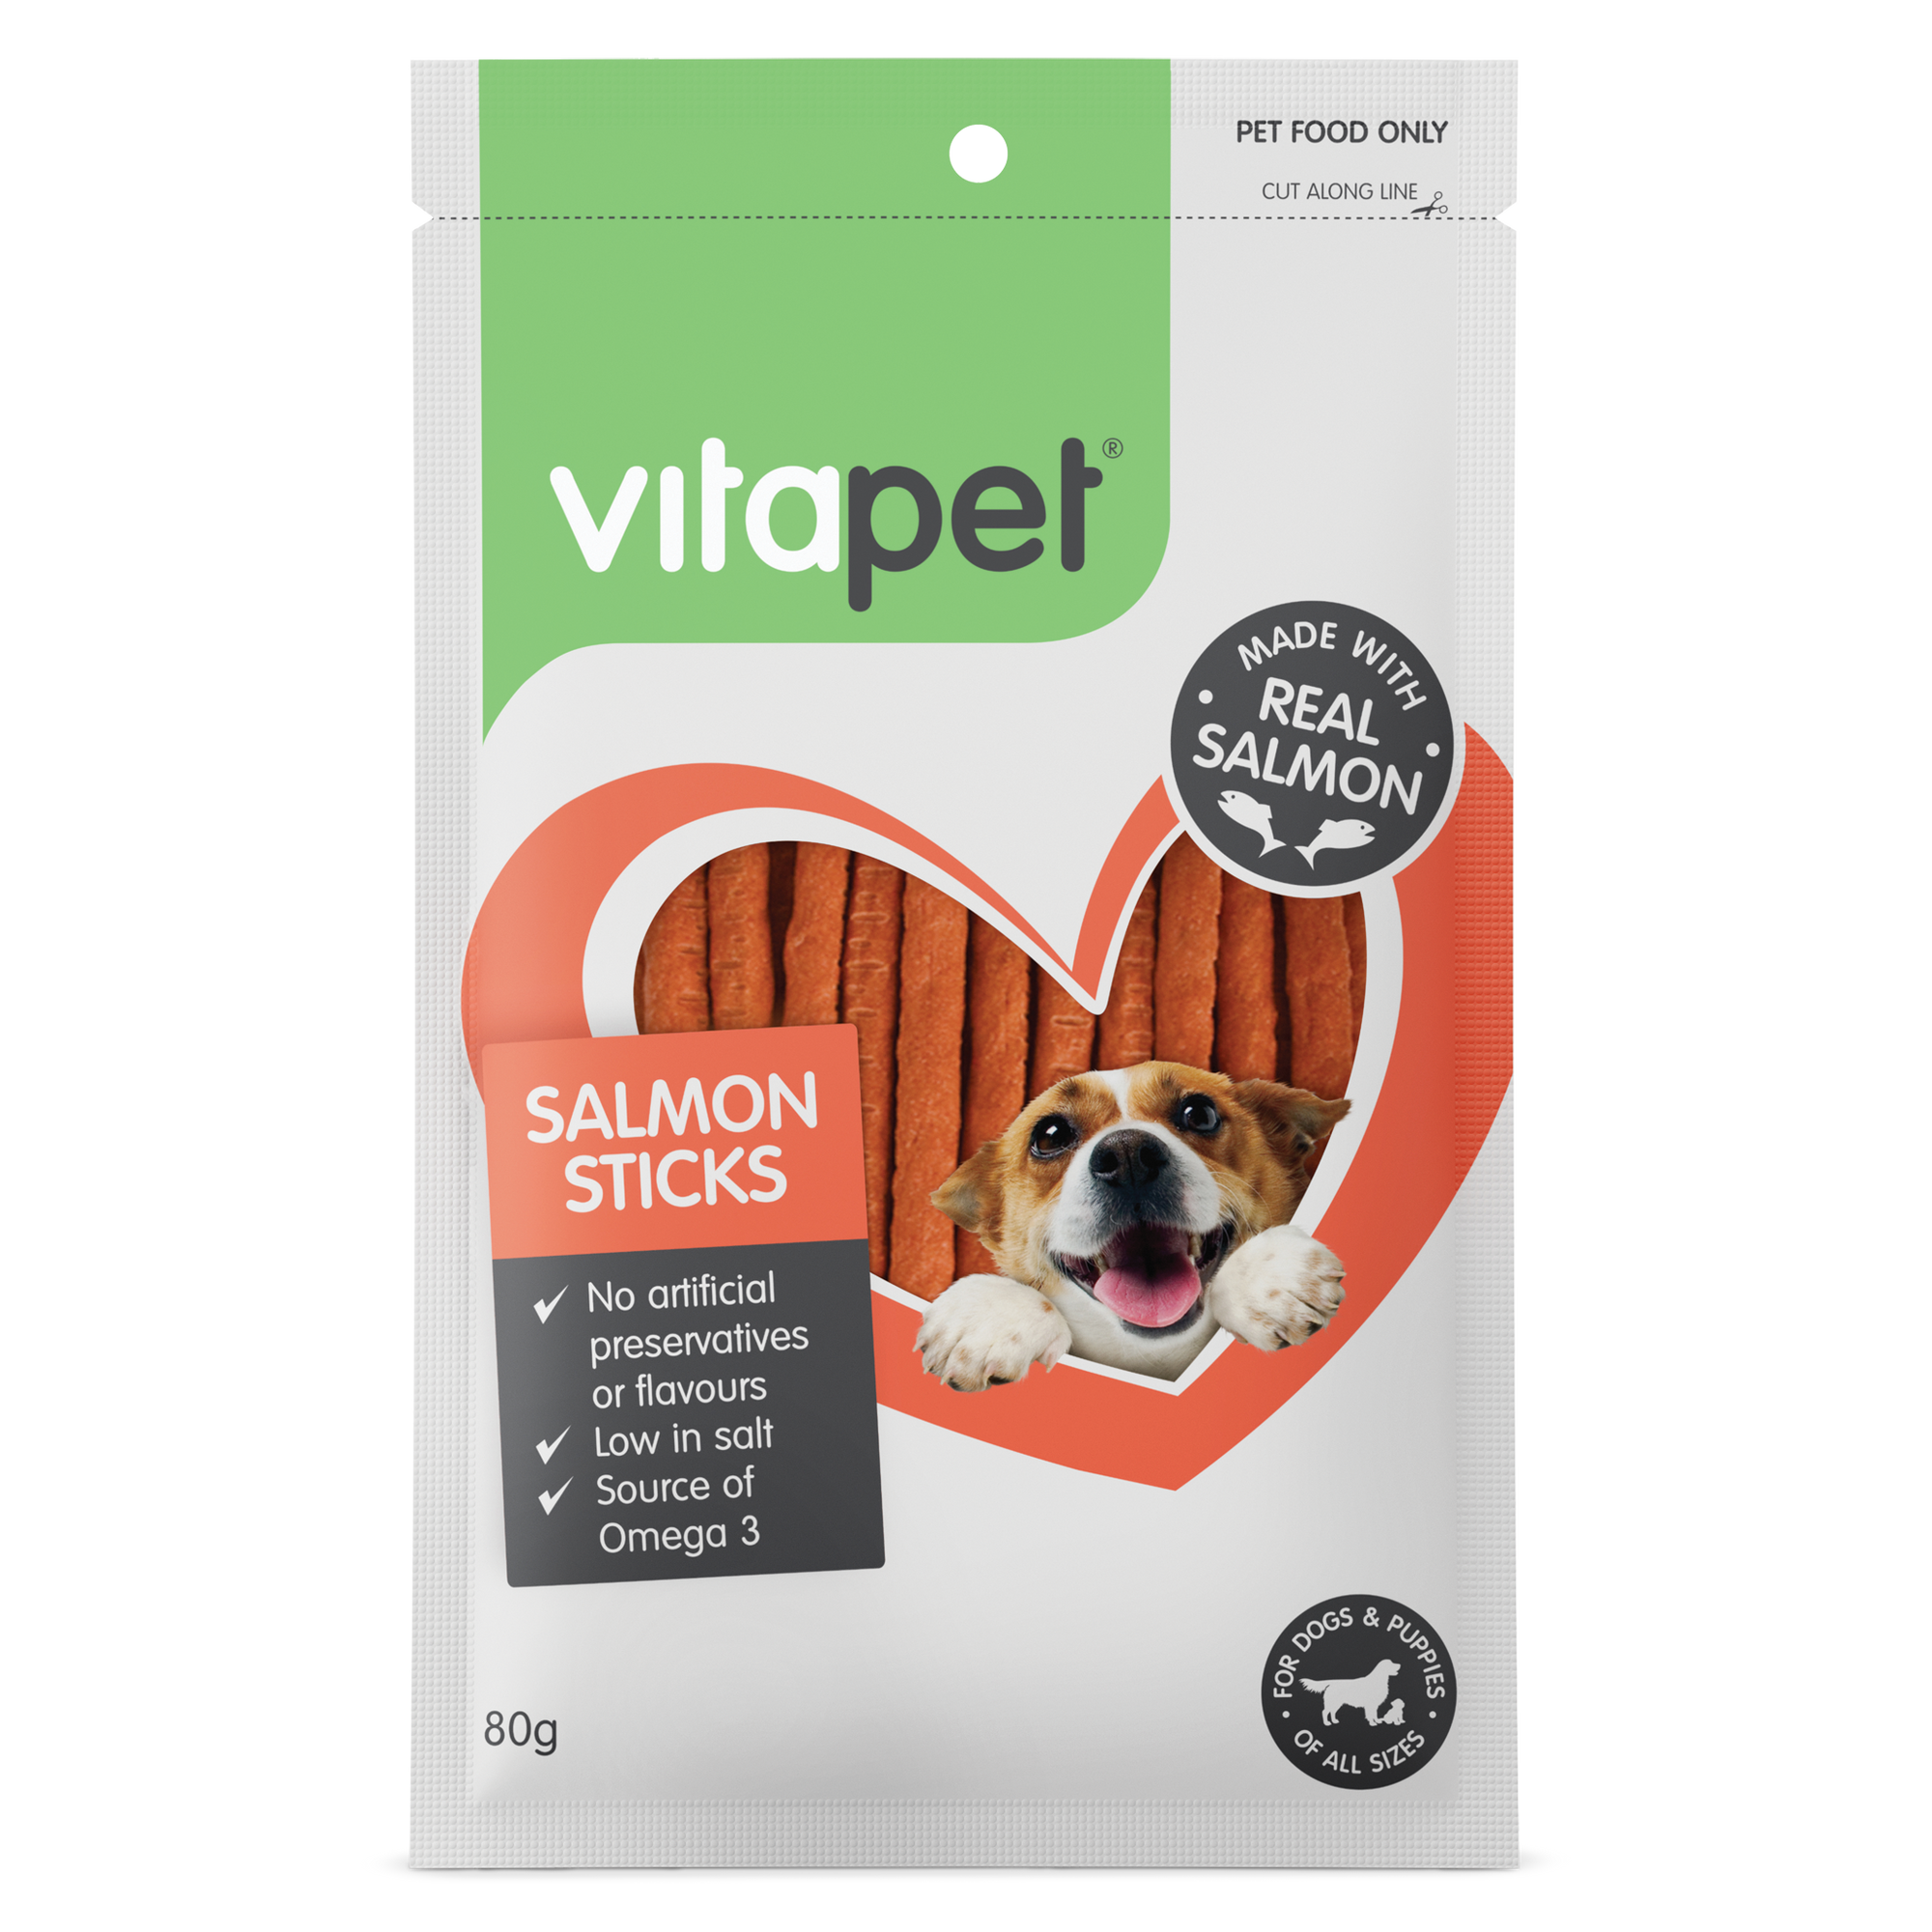 Vitapet Jerhigh Salmon Sticks 80g - RSPCA VIC